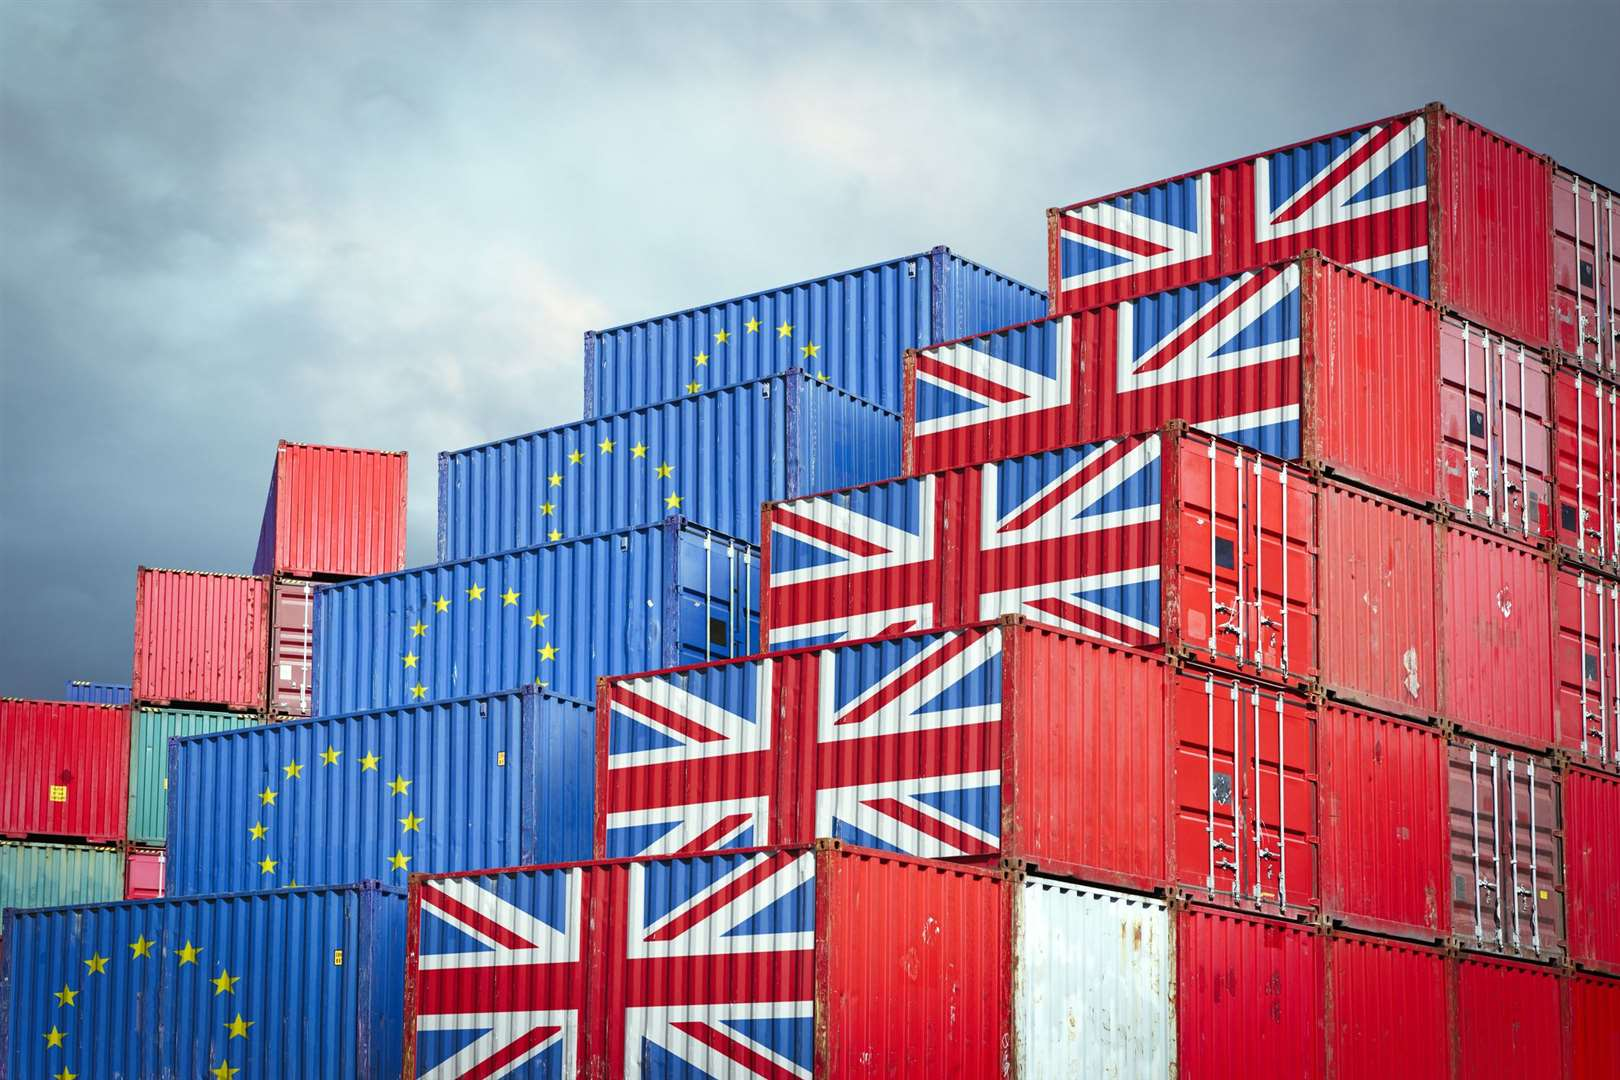 As a major hub for international goods movement, Kent will be a focal point come January 1